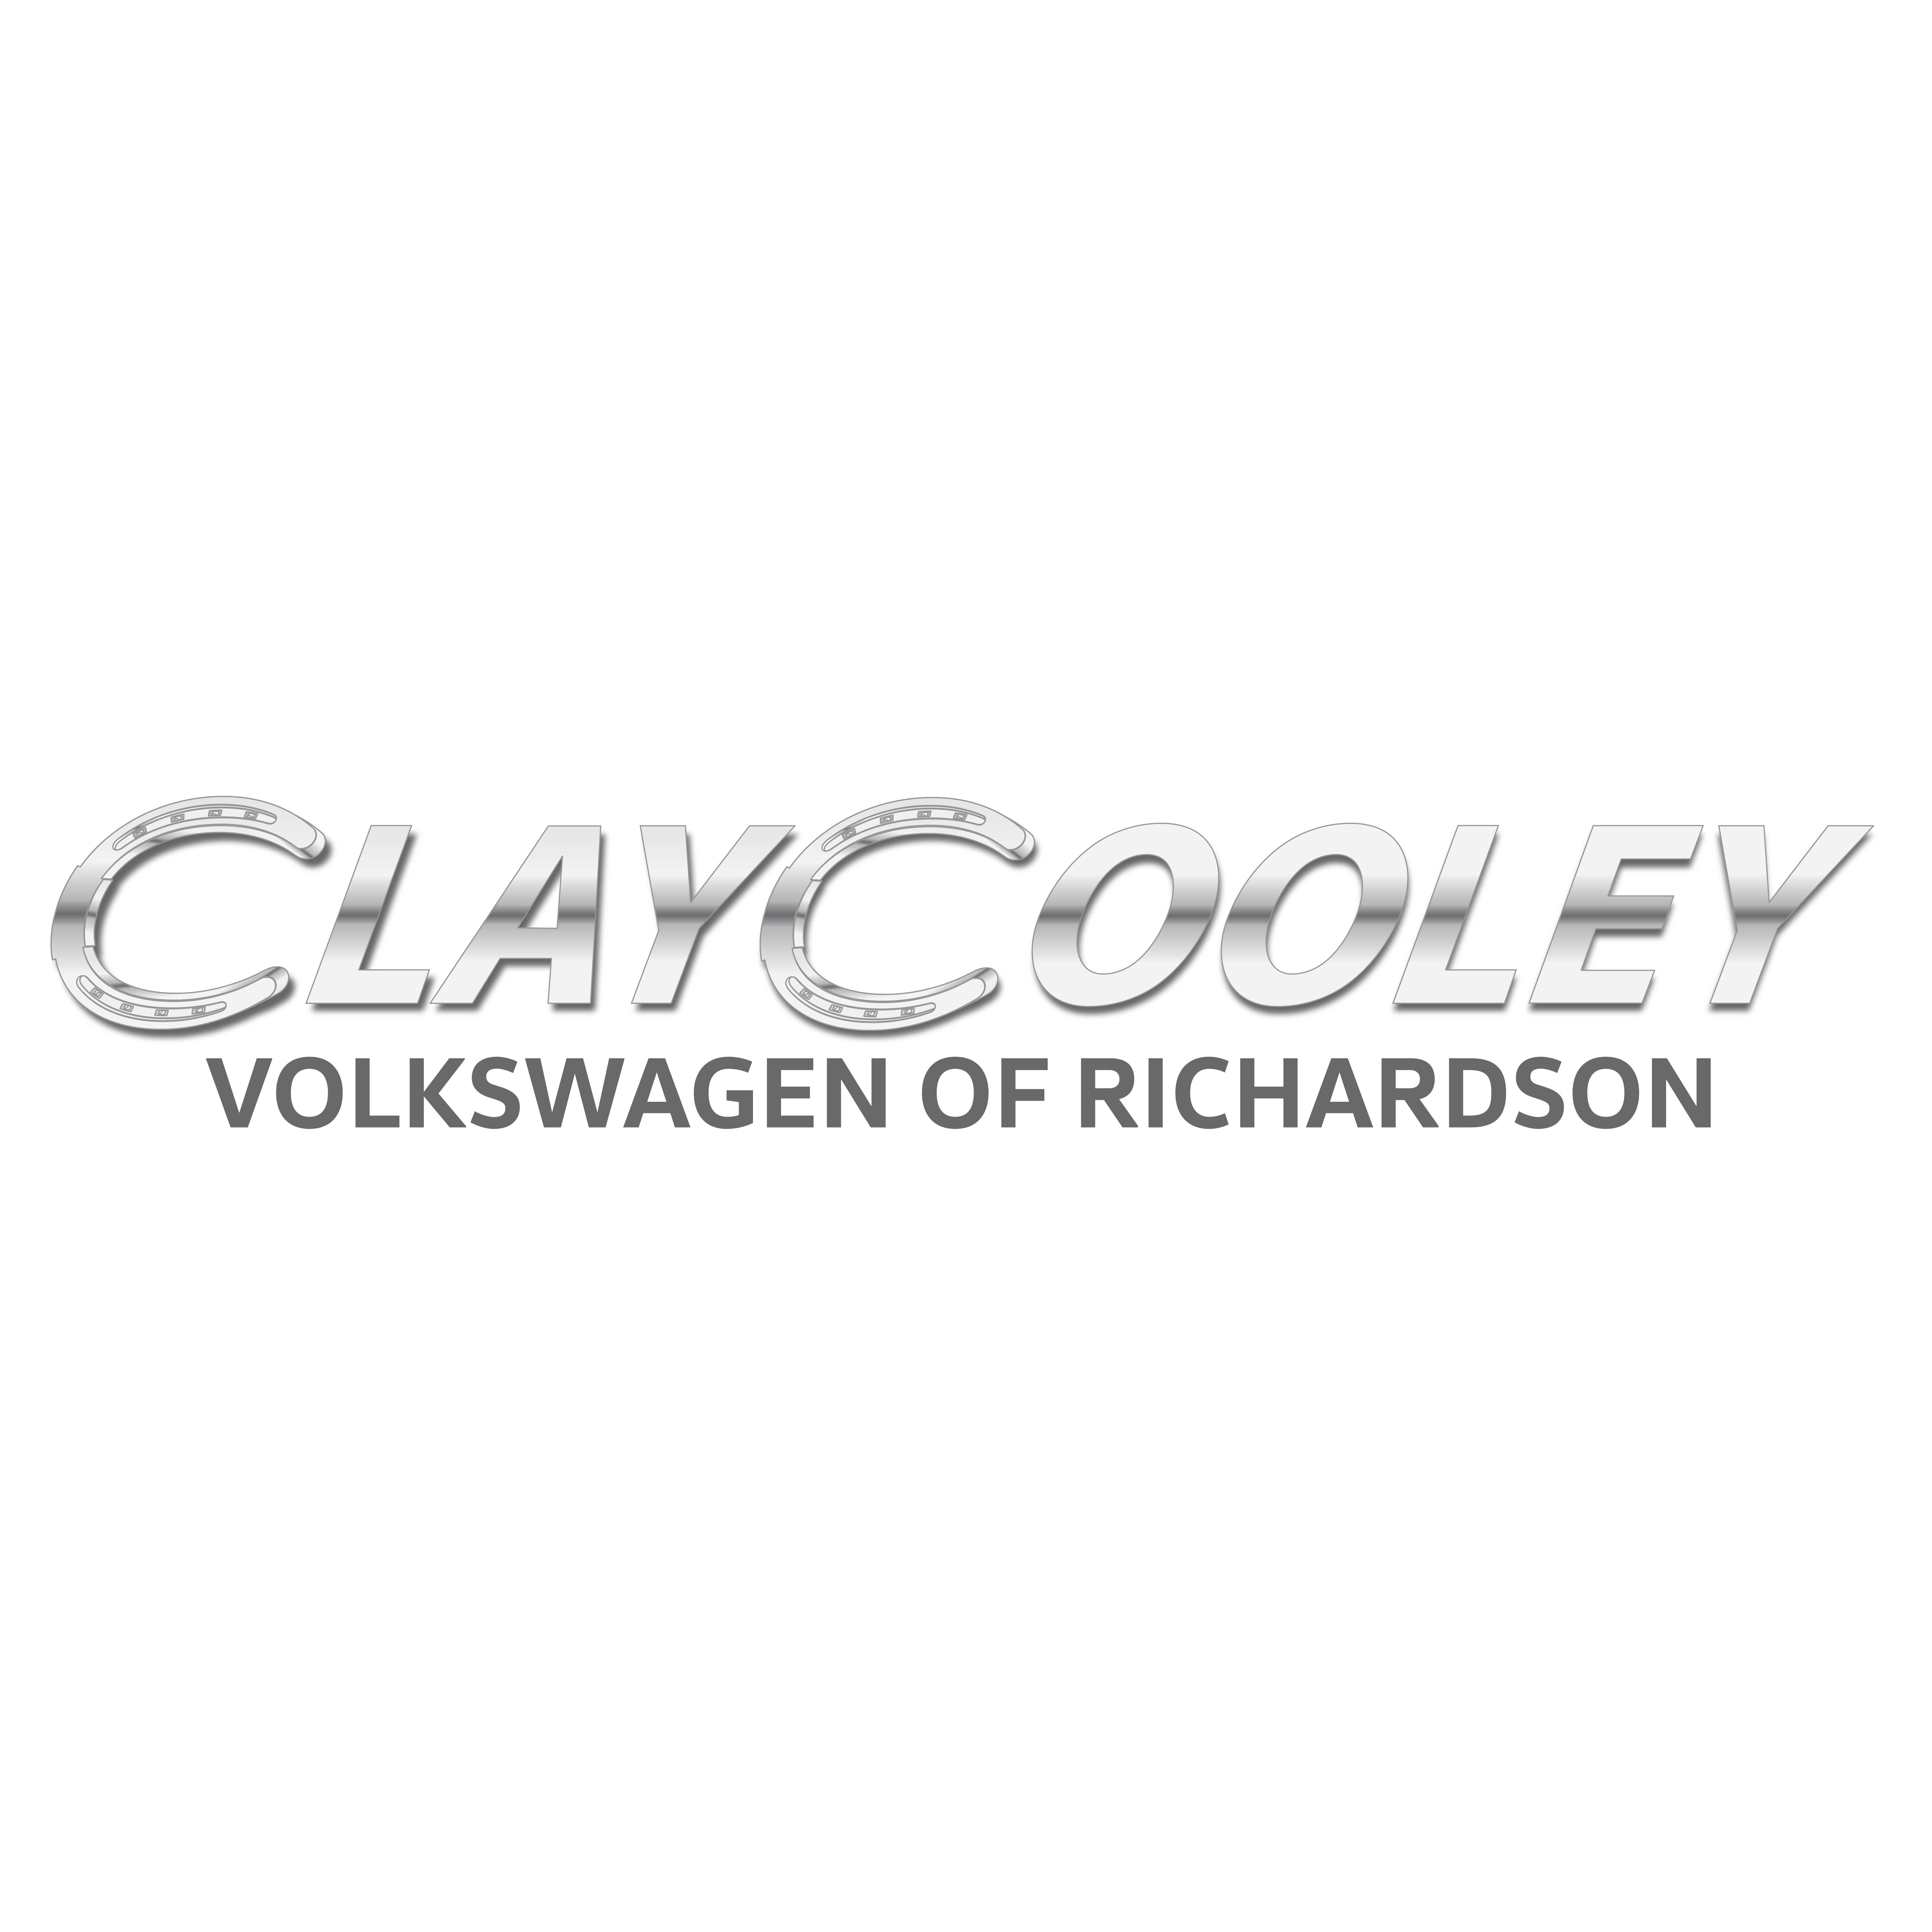 Clay Cooley Volkswagen of Richardson - Richardson, TX 75080 - (469)646-7737 | ShowMeLocal.com